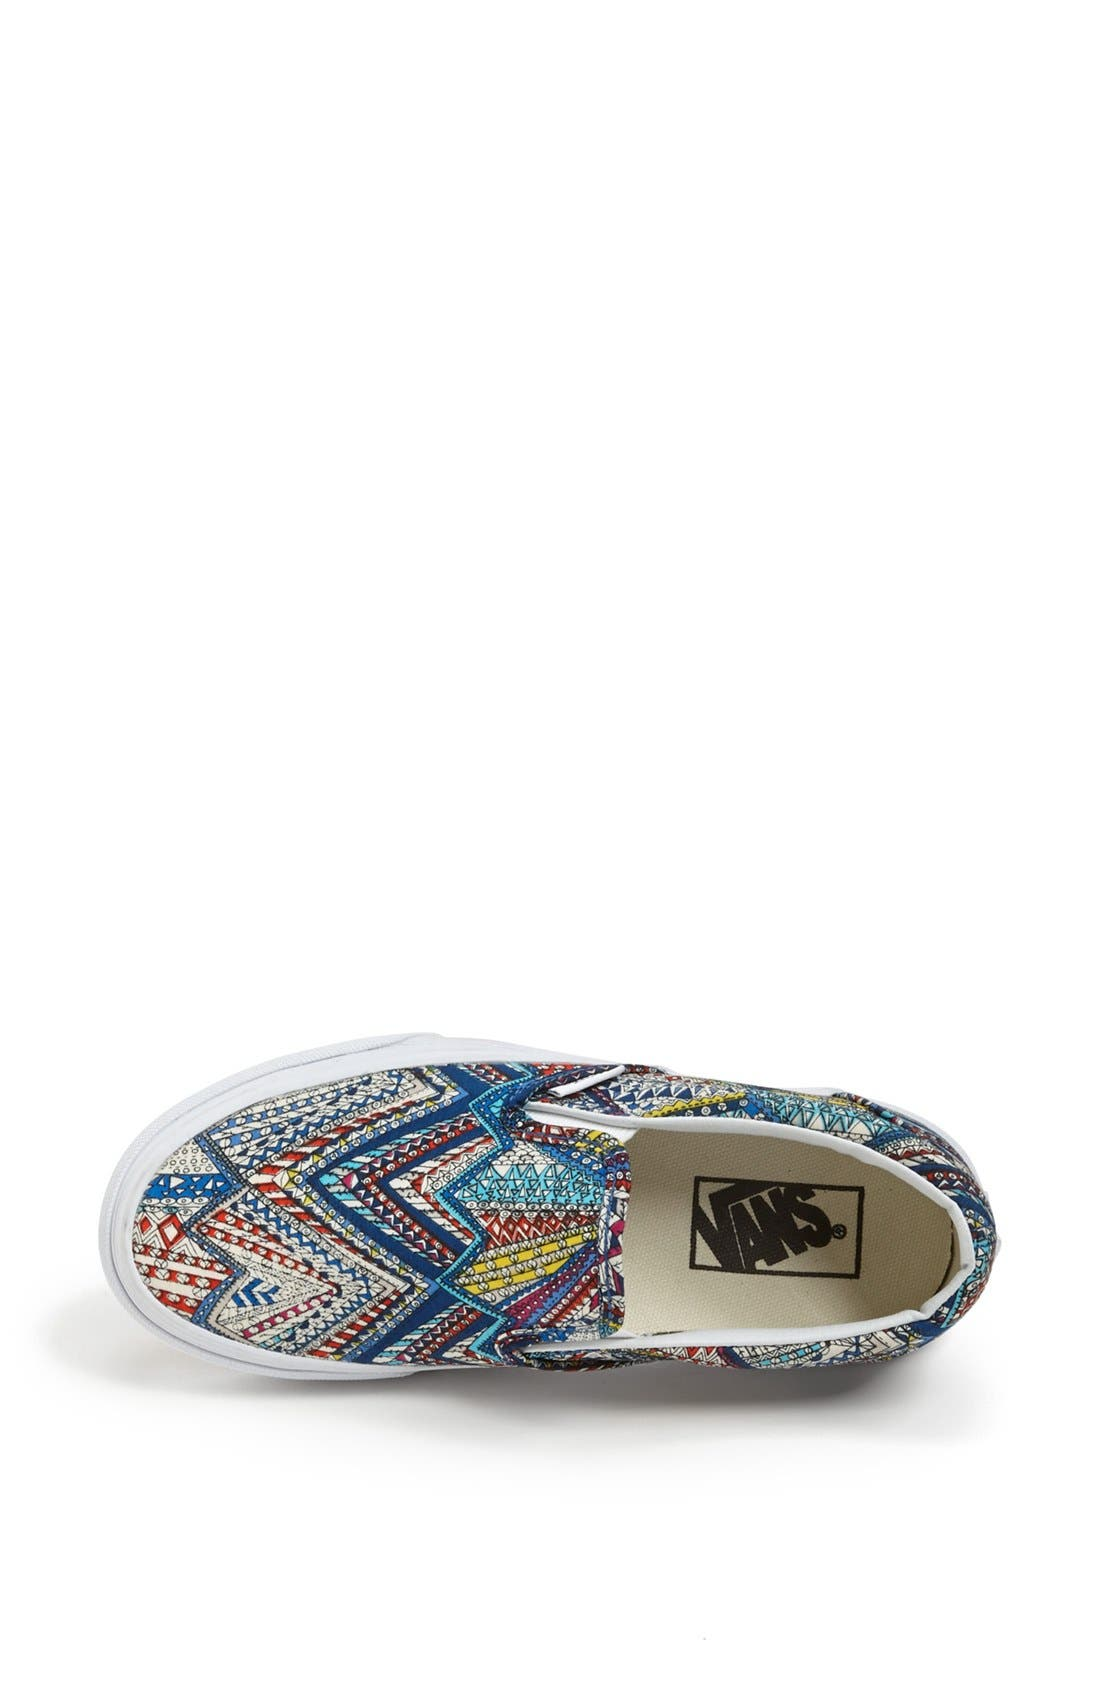 Alternate Image 3  - Vans 'Classic - Abstract' Sneaker (Women)